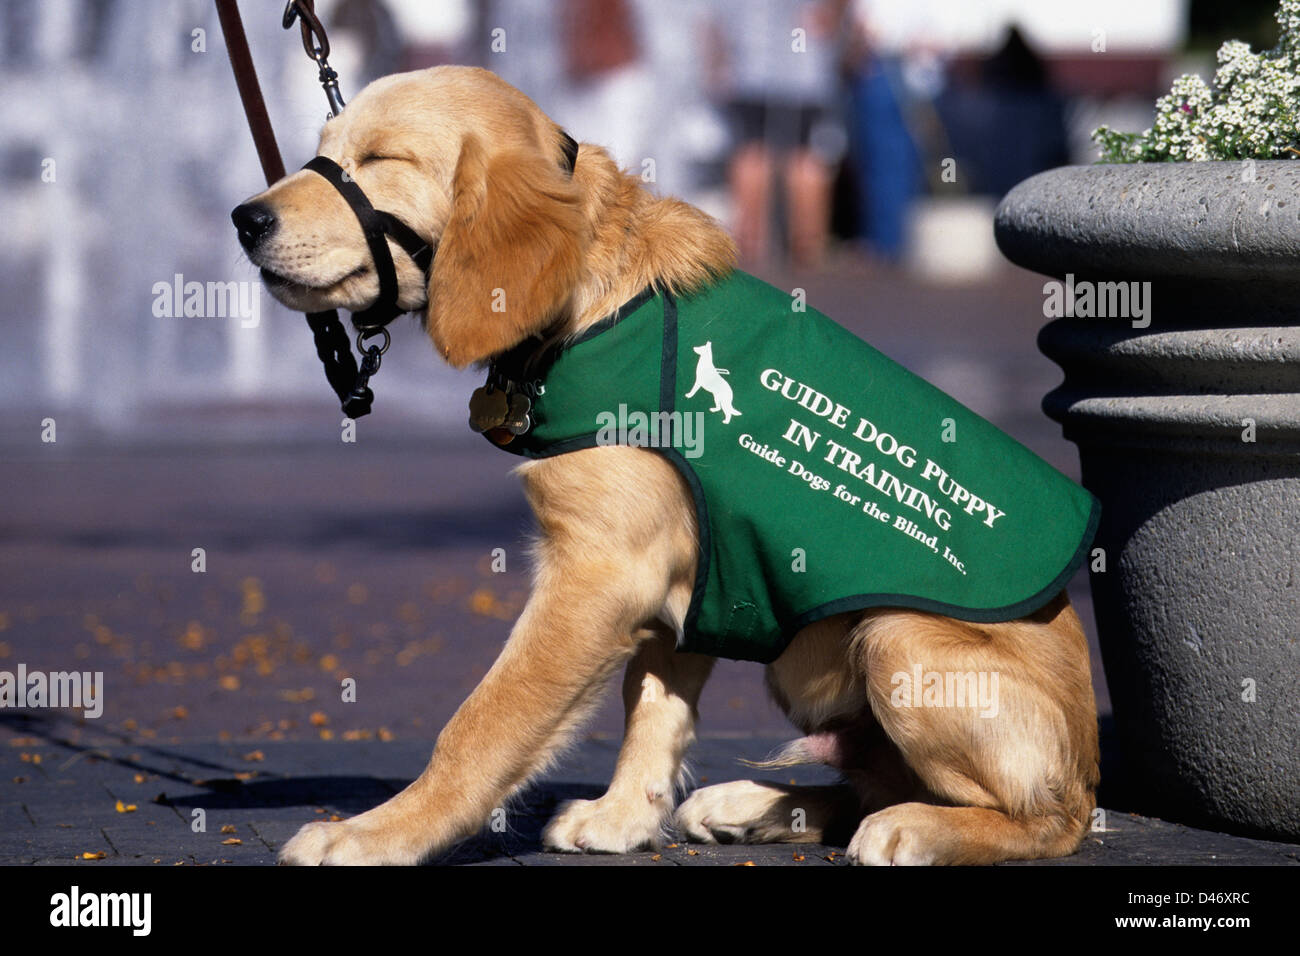 Guide dog puppy in training (golden retriever/yellow Lab mix